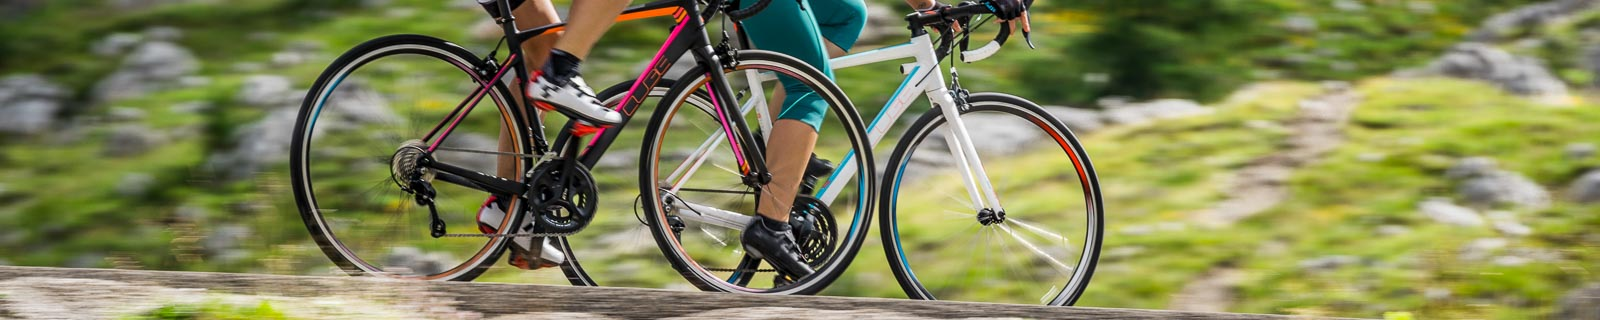 Women's road bikes made of carbon and aluminium